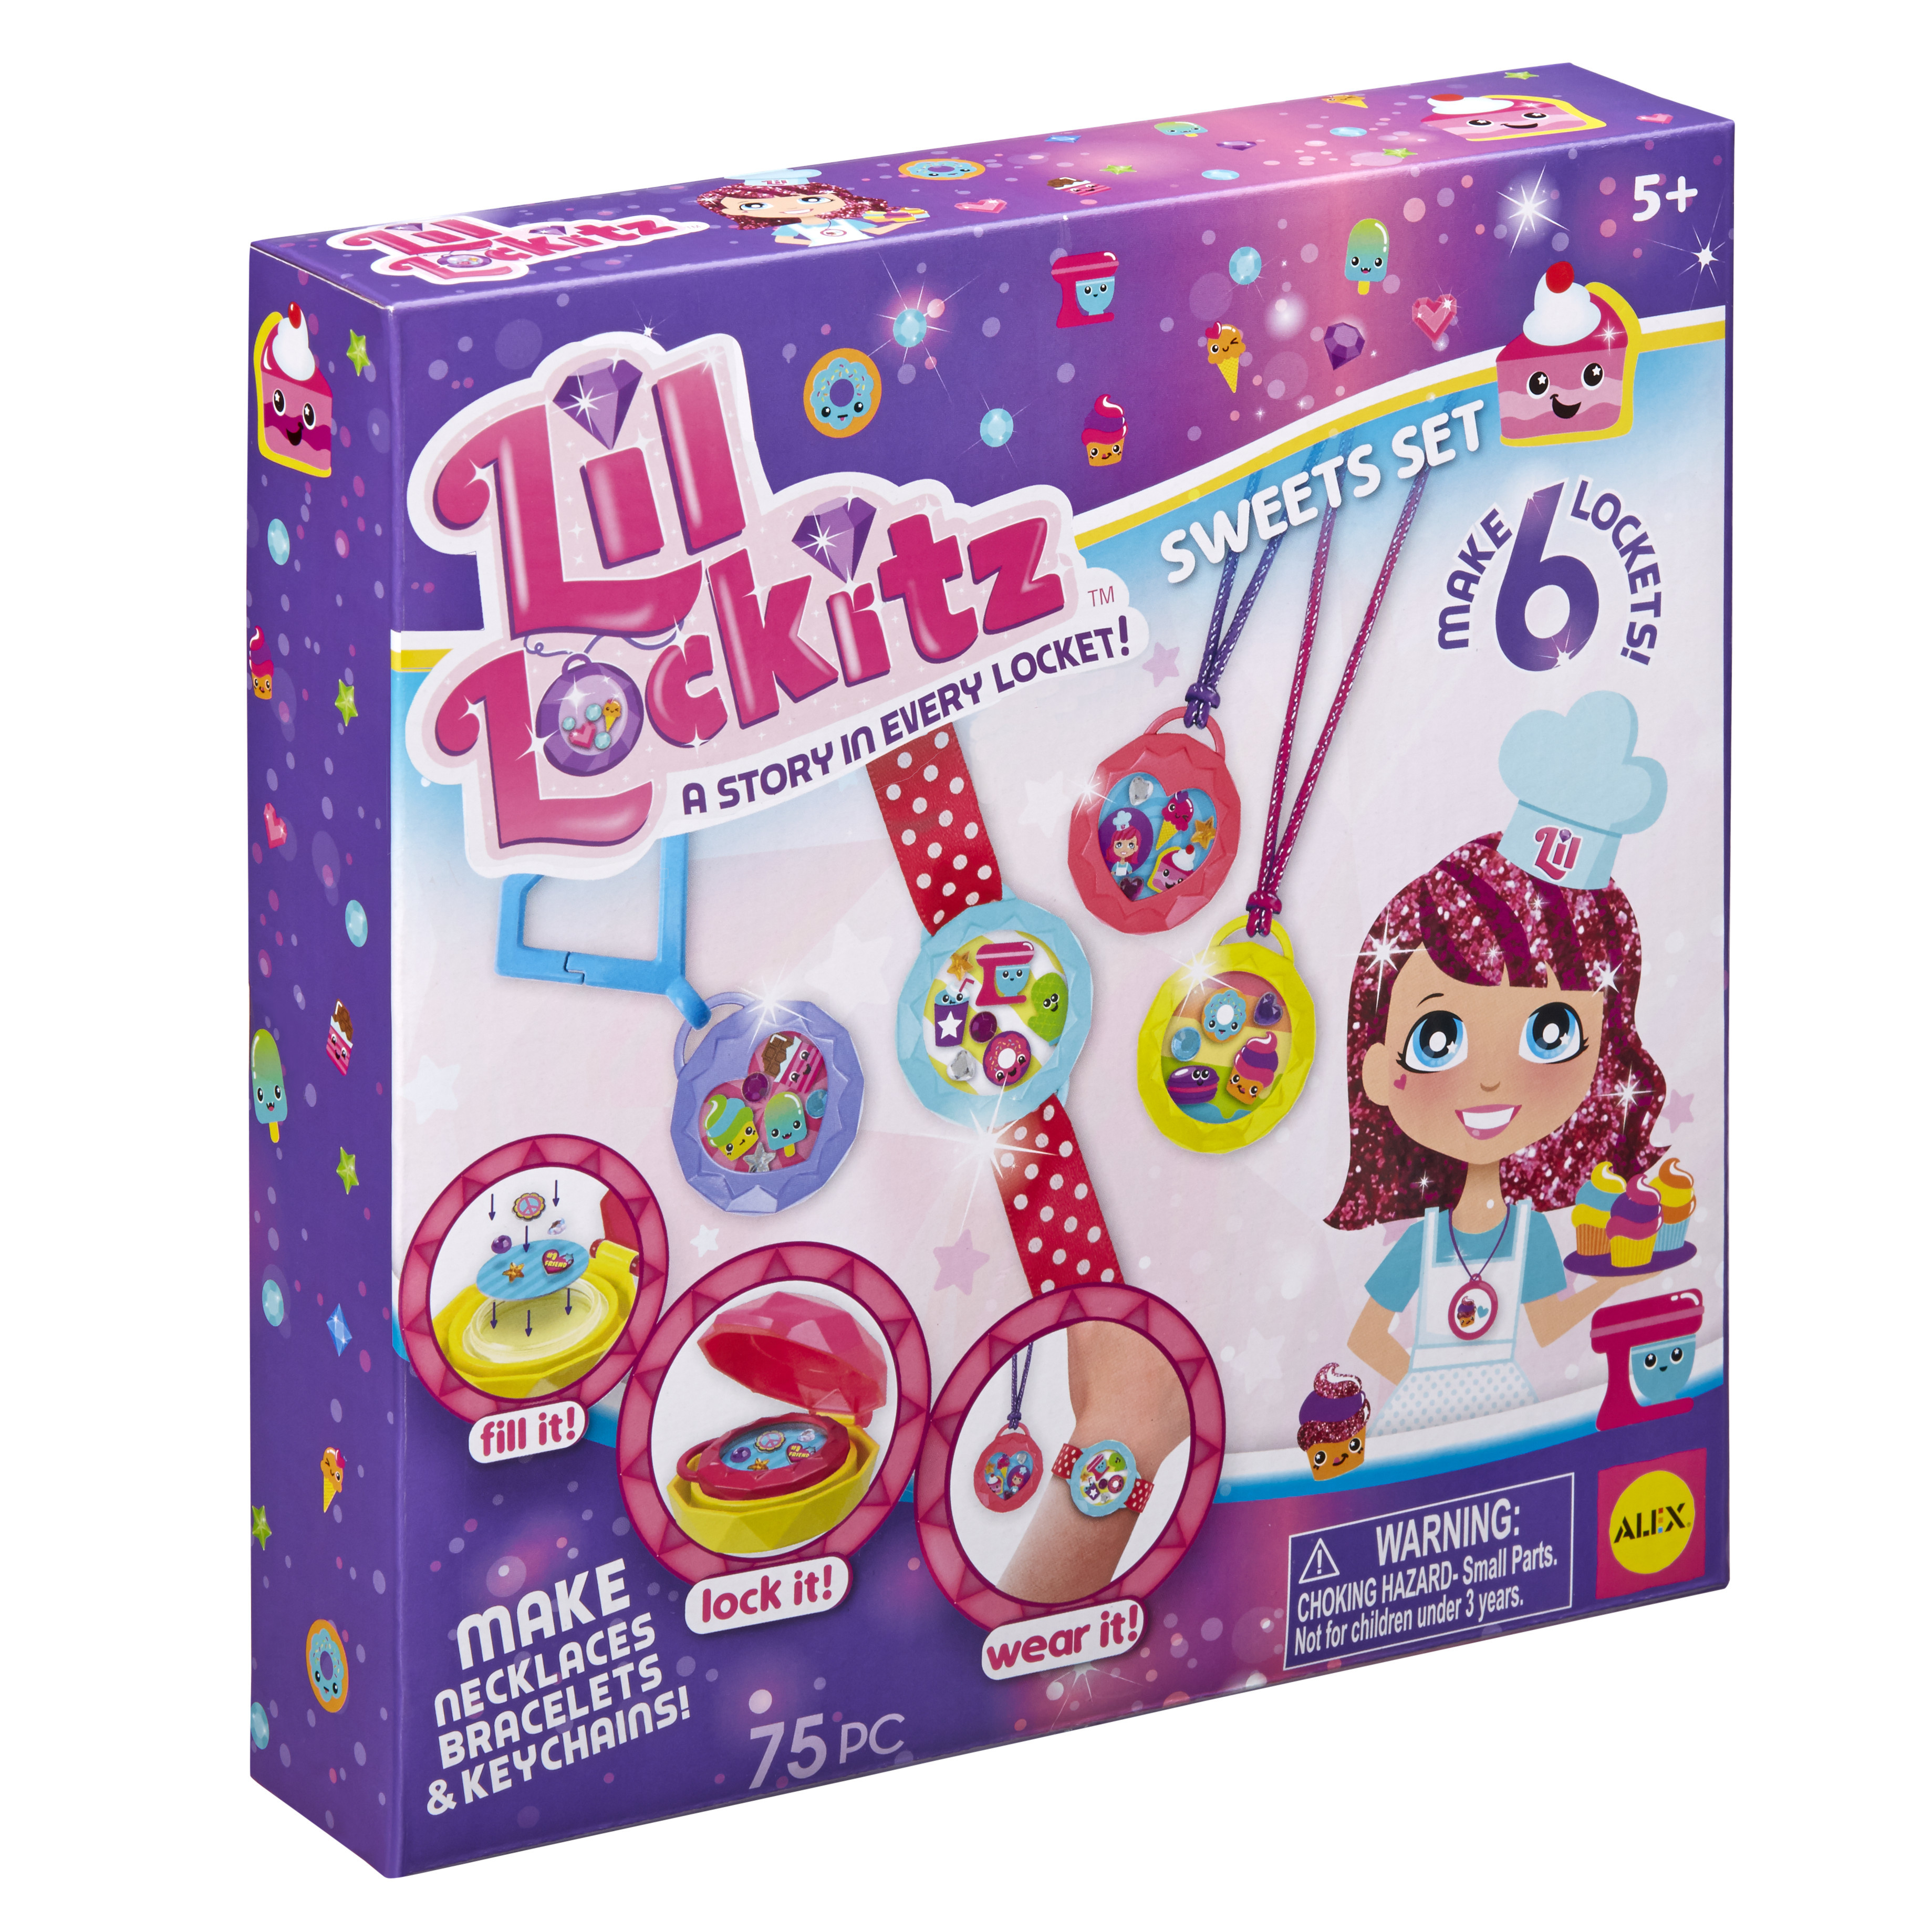 Lil Lockitz Sweets Set